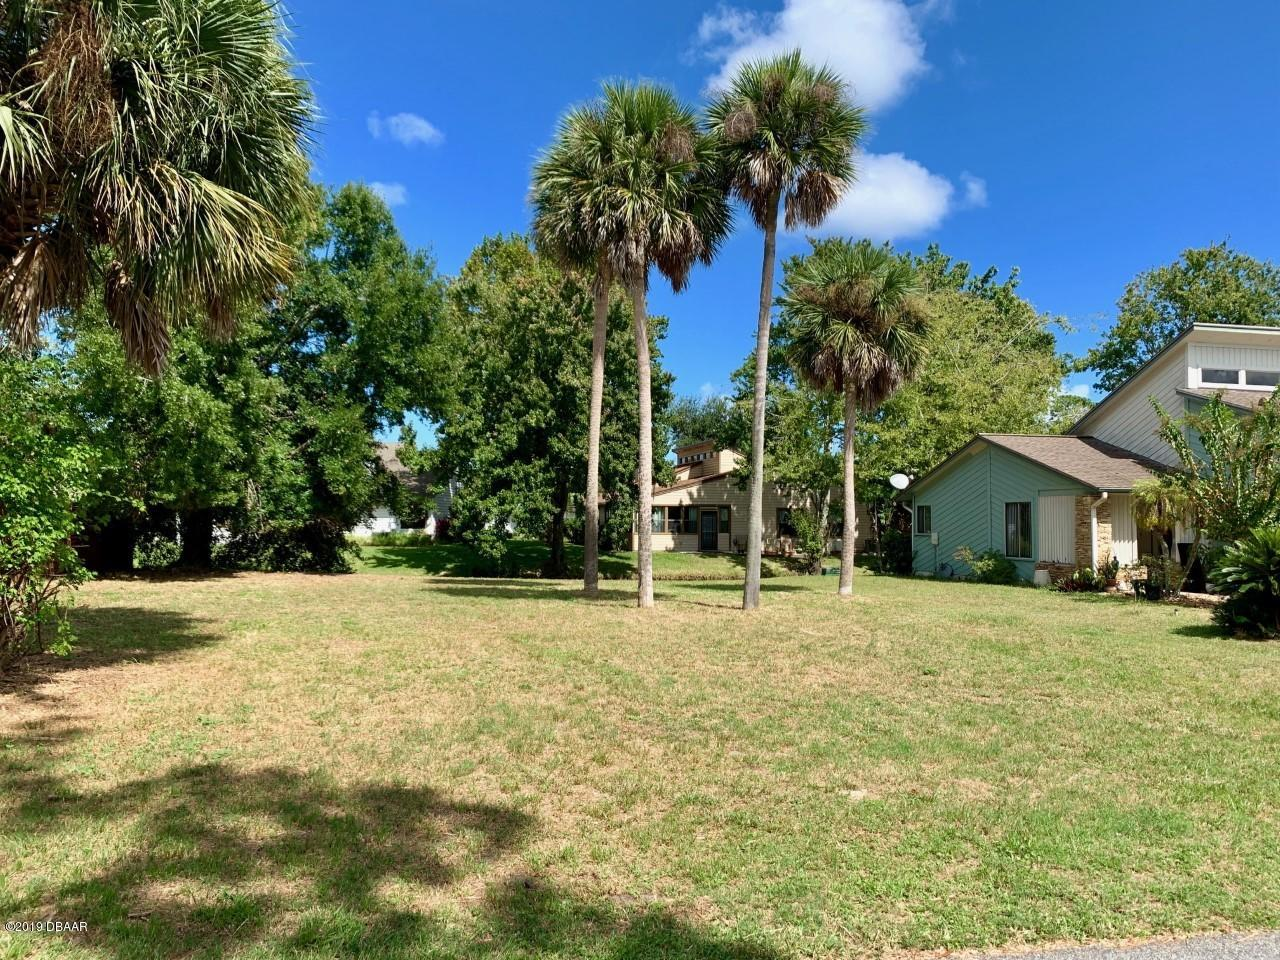 128 Loon Court, one of homes for sale in South Daytona